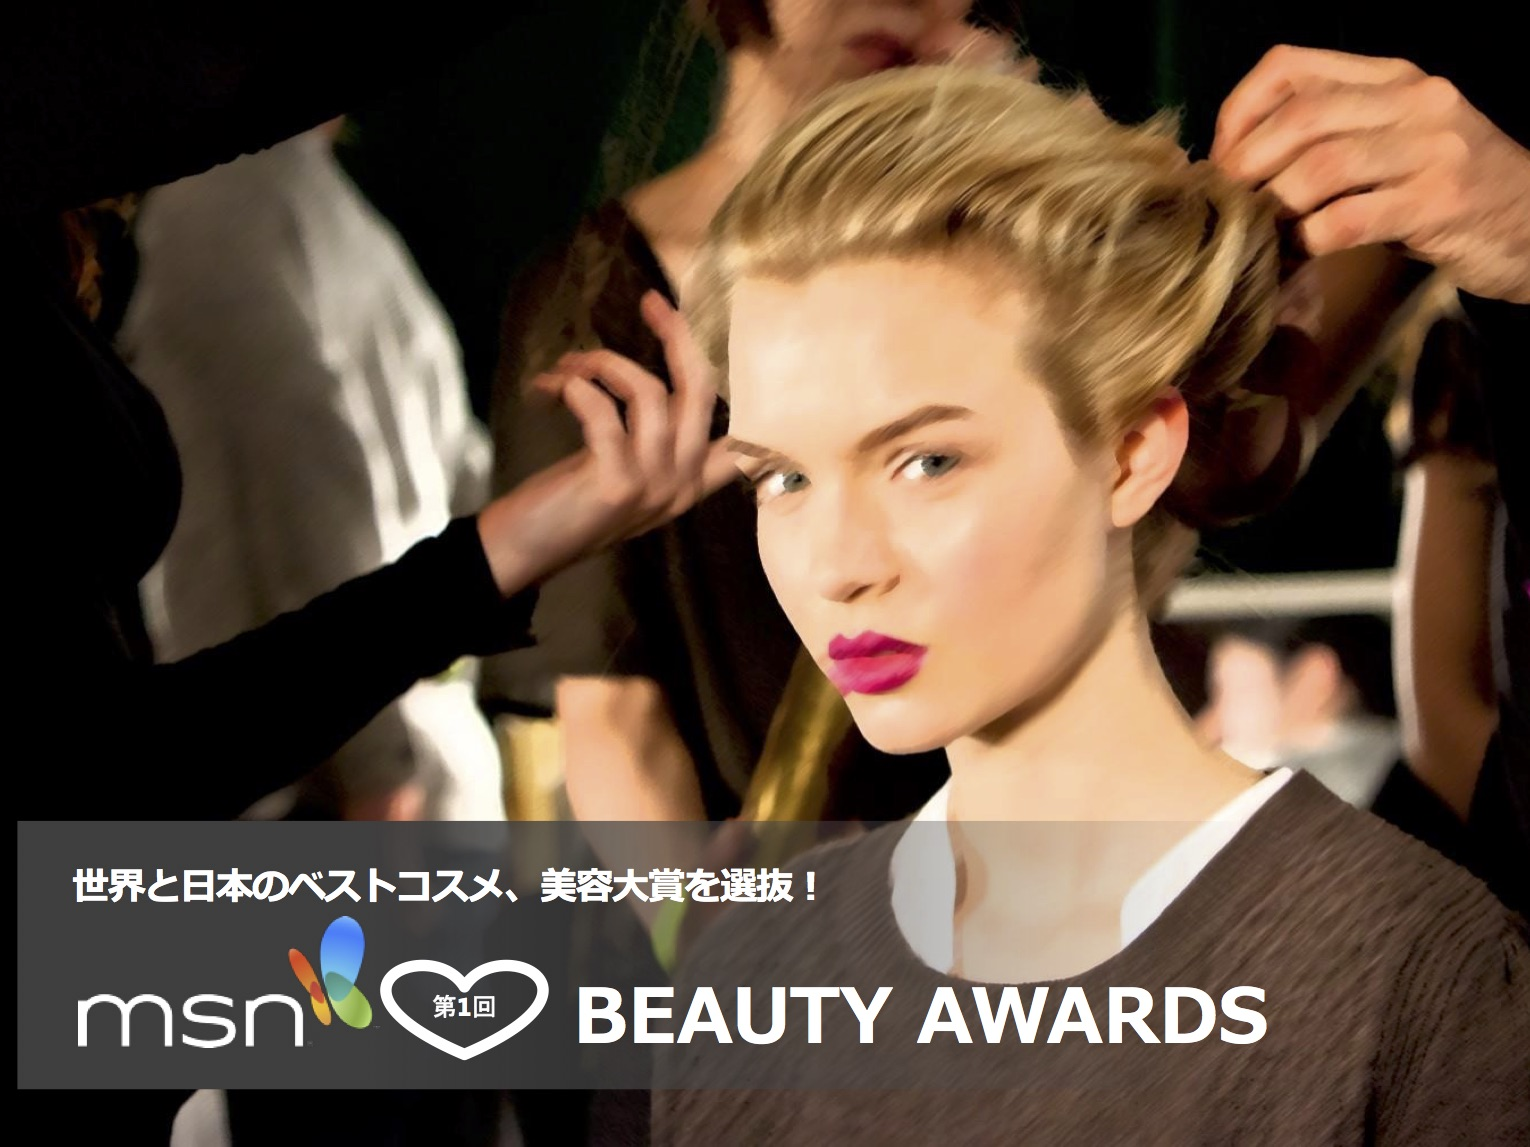 MSN Beauty Awards 2015